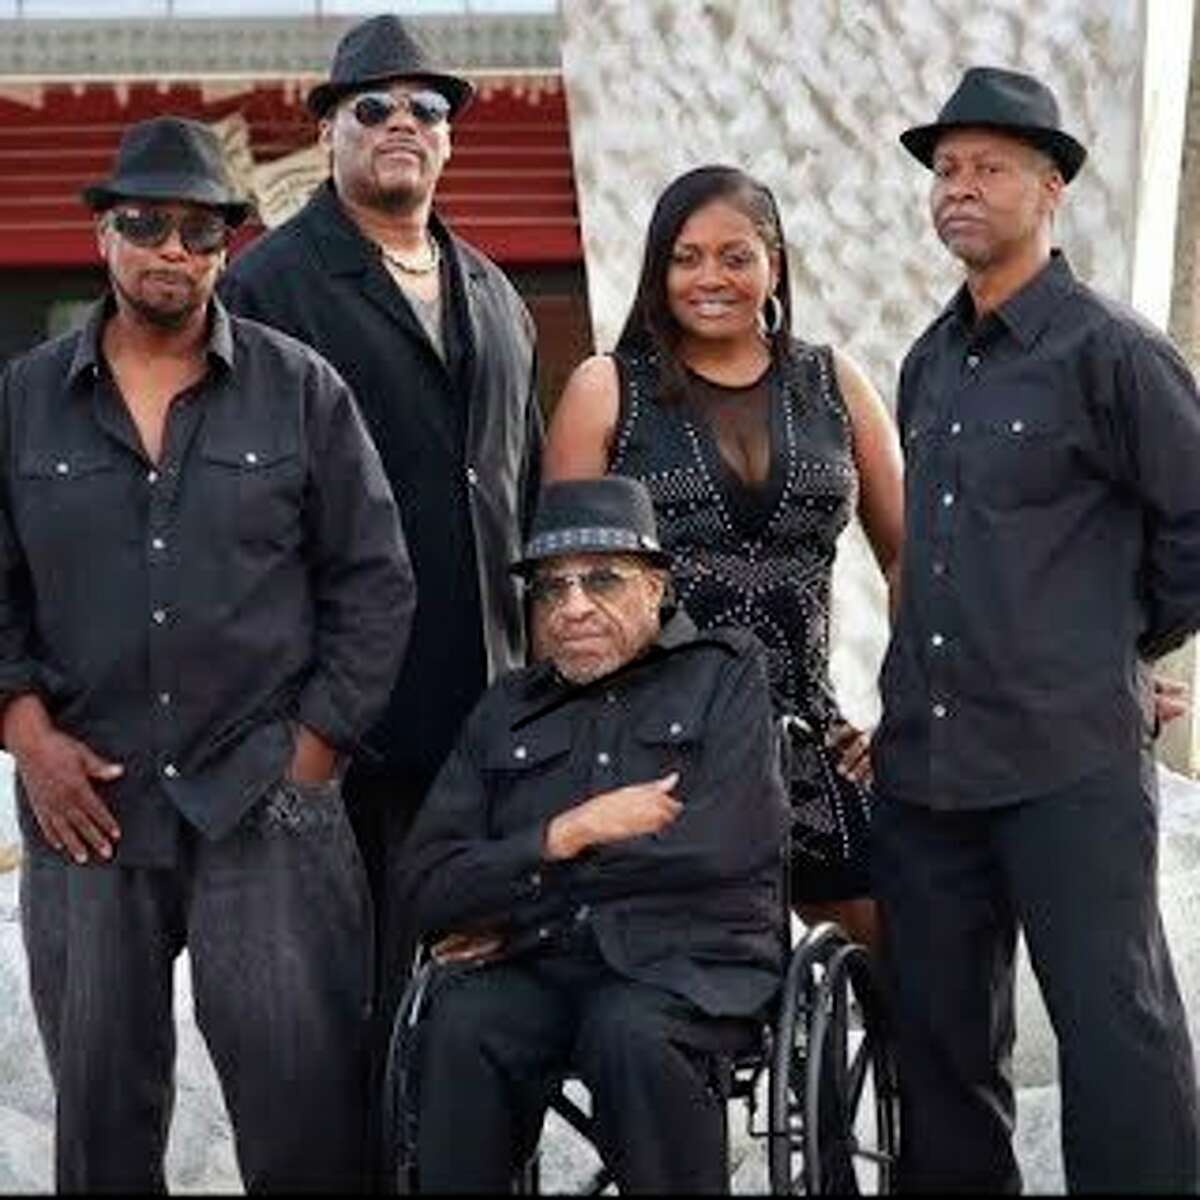 U'Neek performs at 7 p.m., Wednesday, Aug. 22, at the Wenger Pavilion in Baldwin. (Submitted photo)